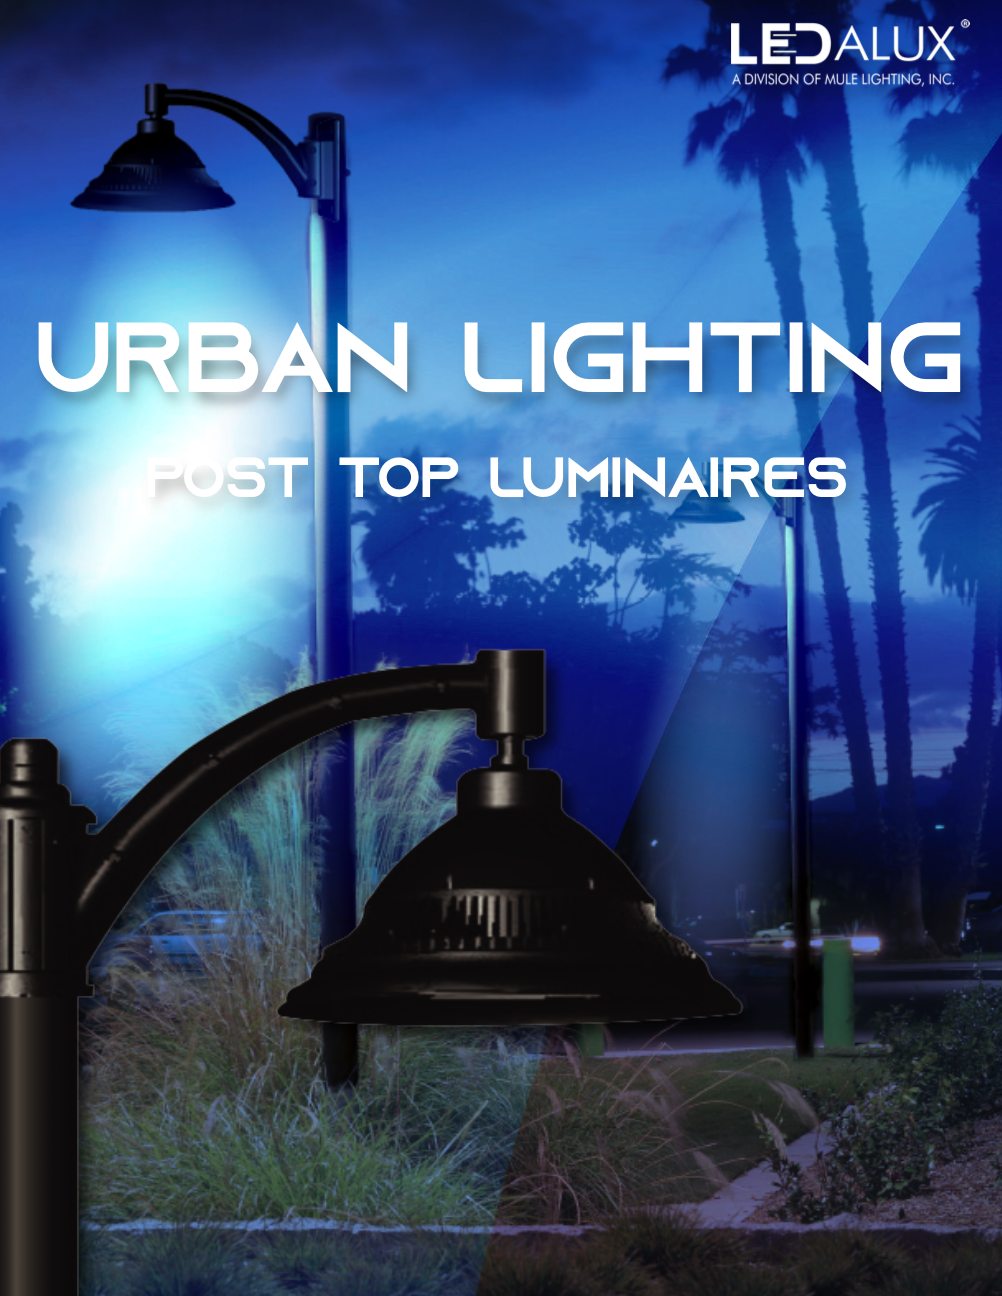 LEDalux Urban Lighting Literature